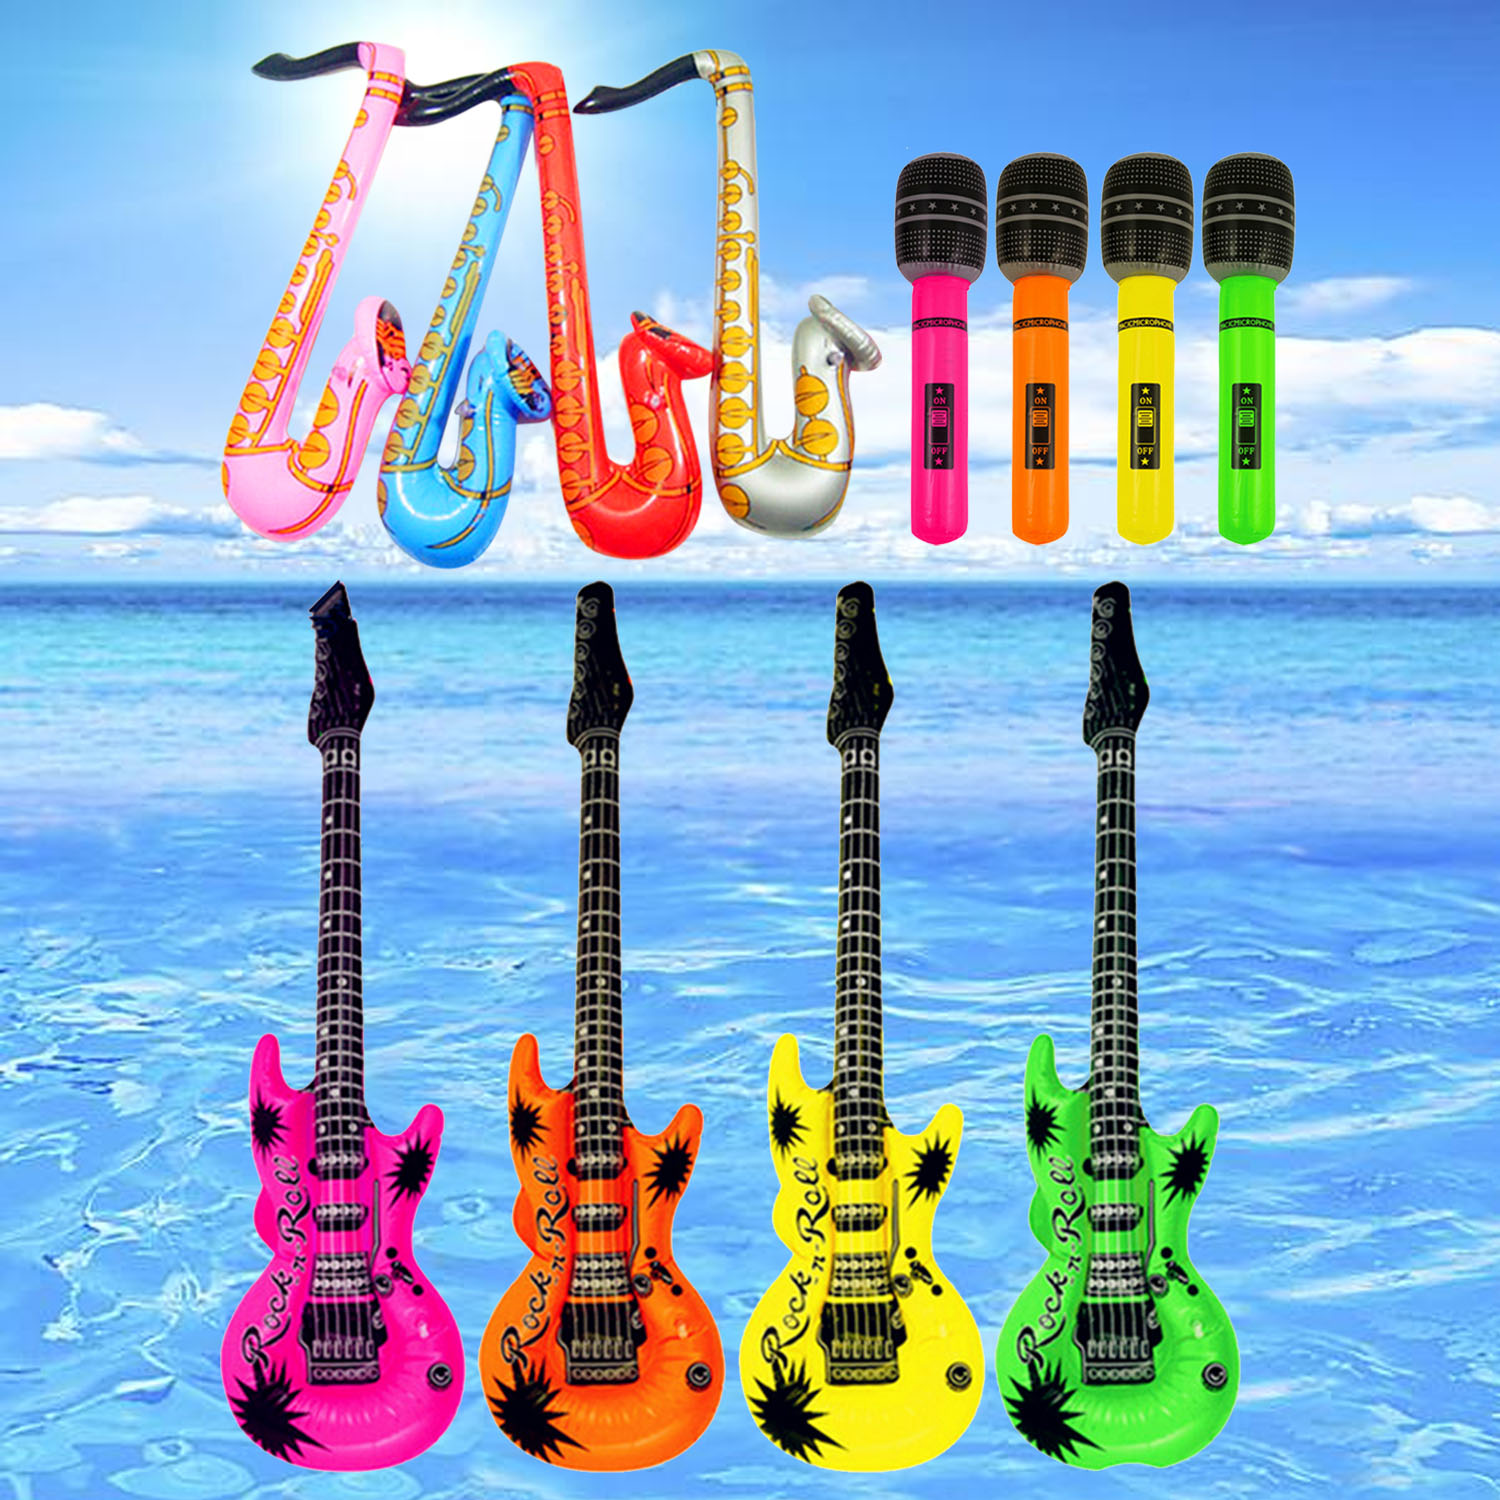 12pcs Colorful Inflatable Guitar Saxophone Microphone Piano Keyboard Musical Instruments Air Balloons Concert Party Decor Toy